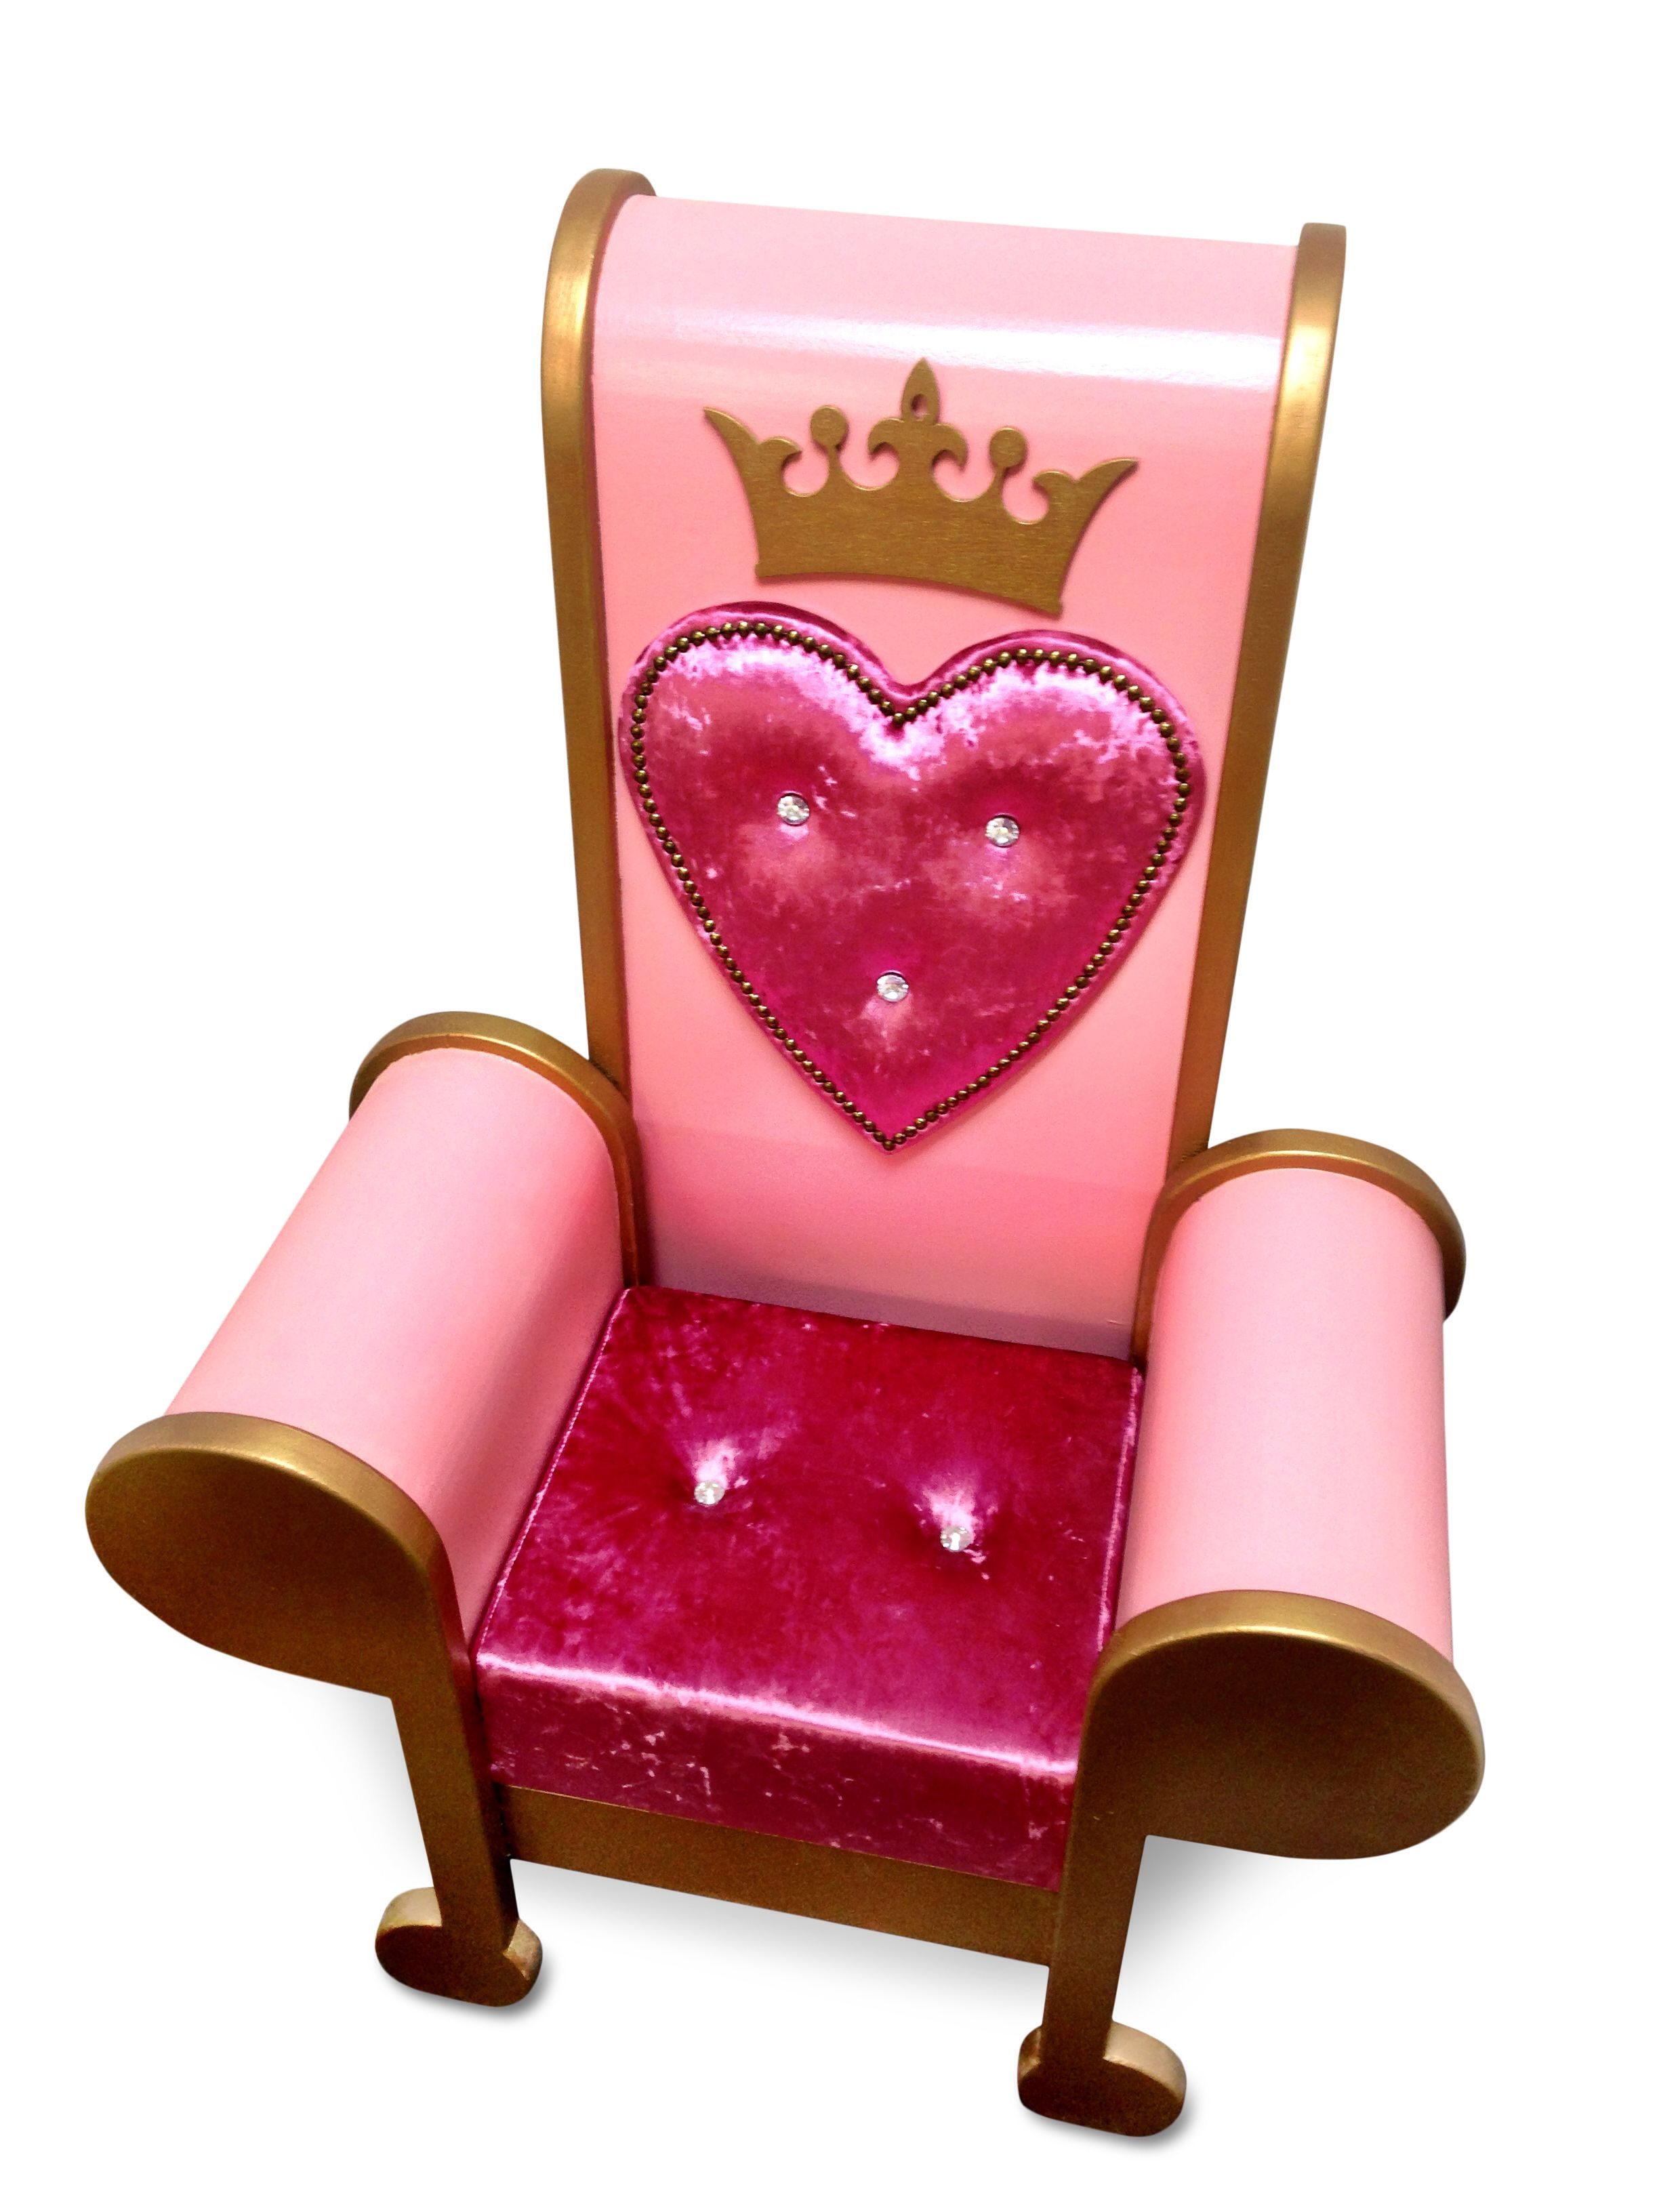 Princess throne chair - Stunning Princess Throne Chair With Crushed Velvet And Crystal Stud Seat This Hand Made Quality